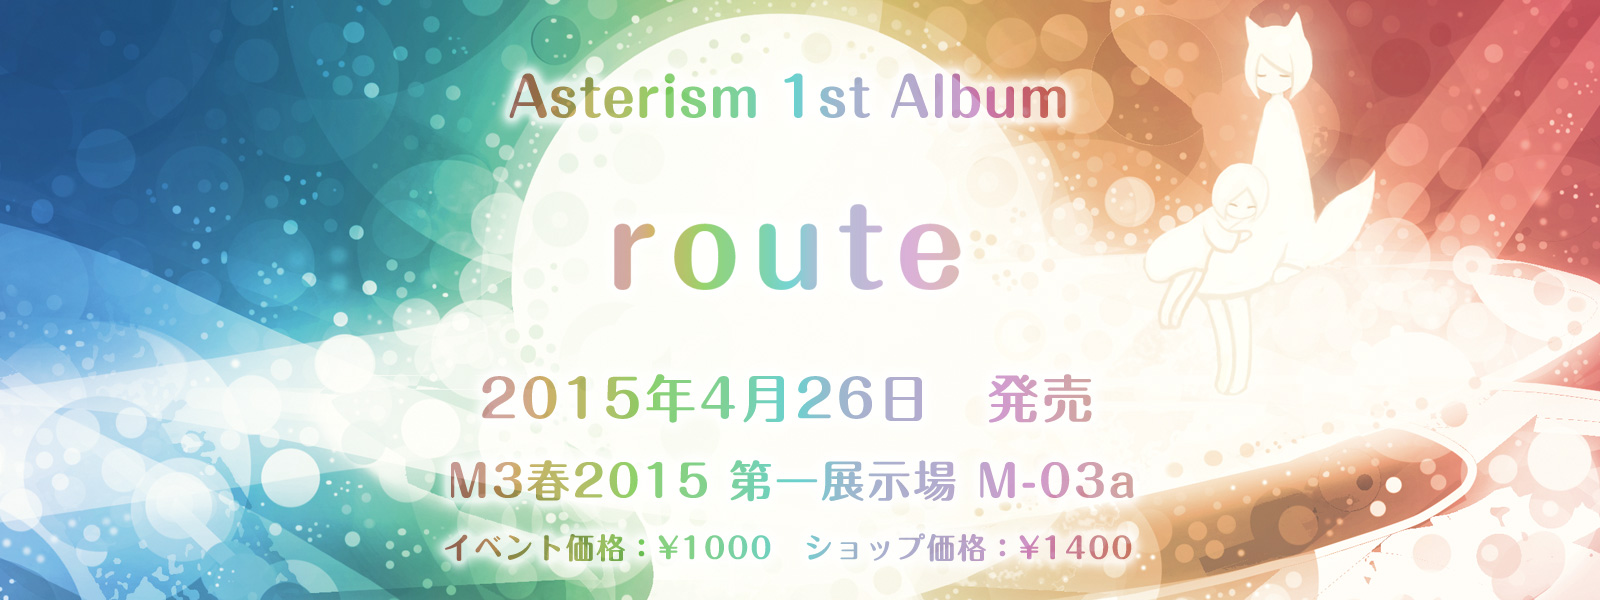 http://asterism-route.tumblr.com